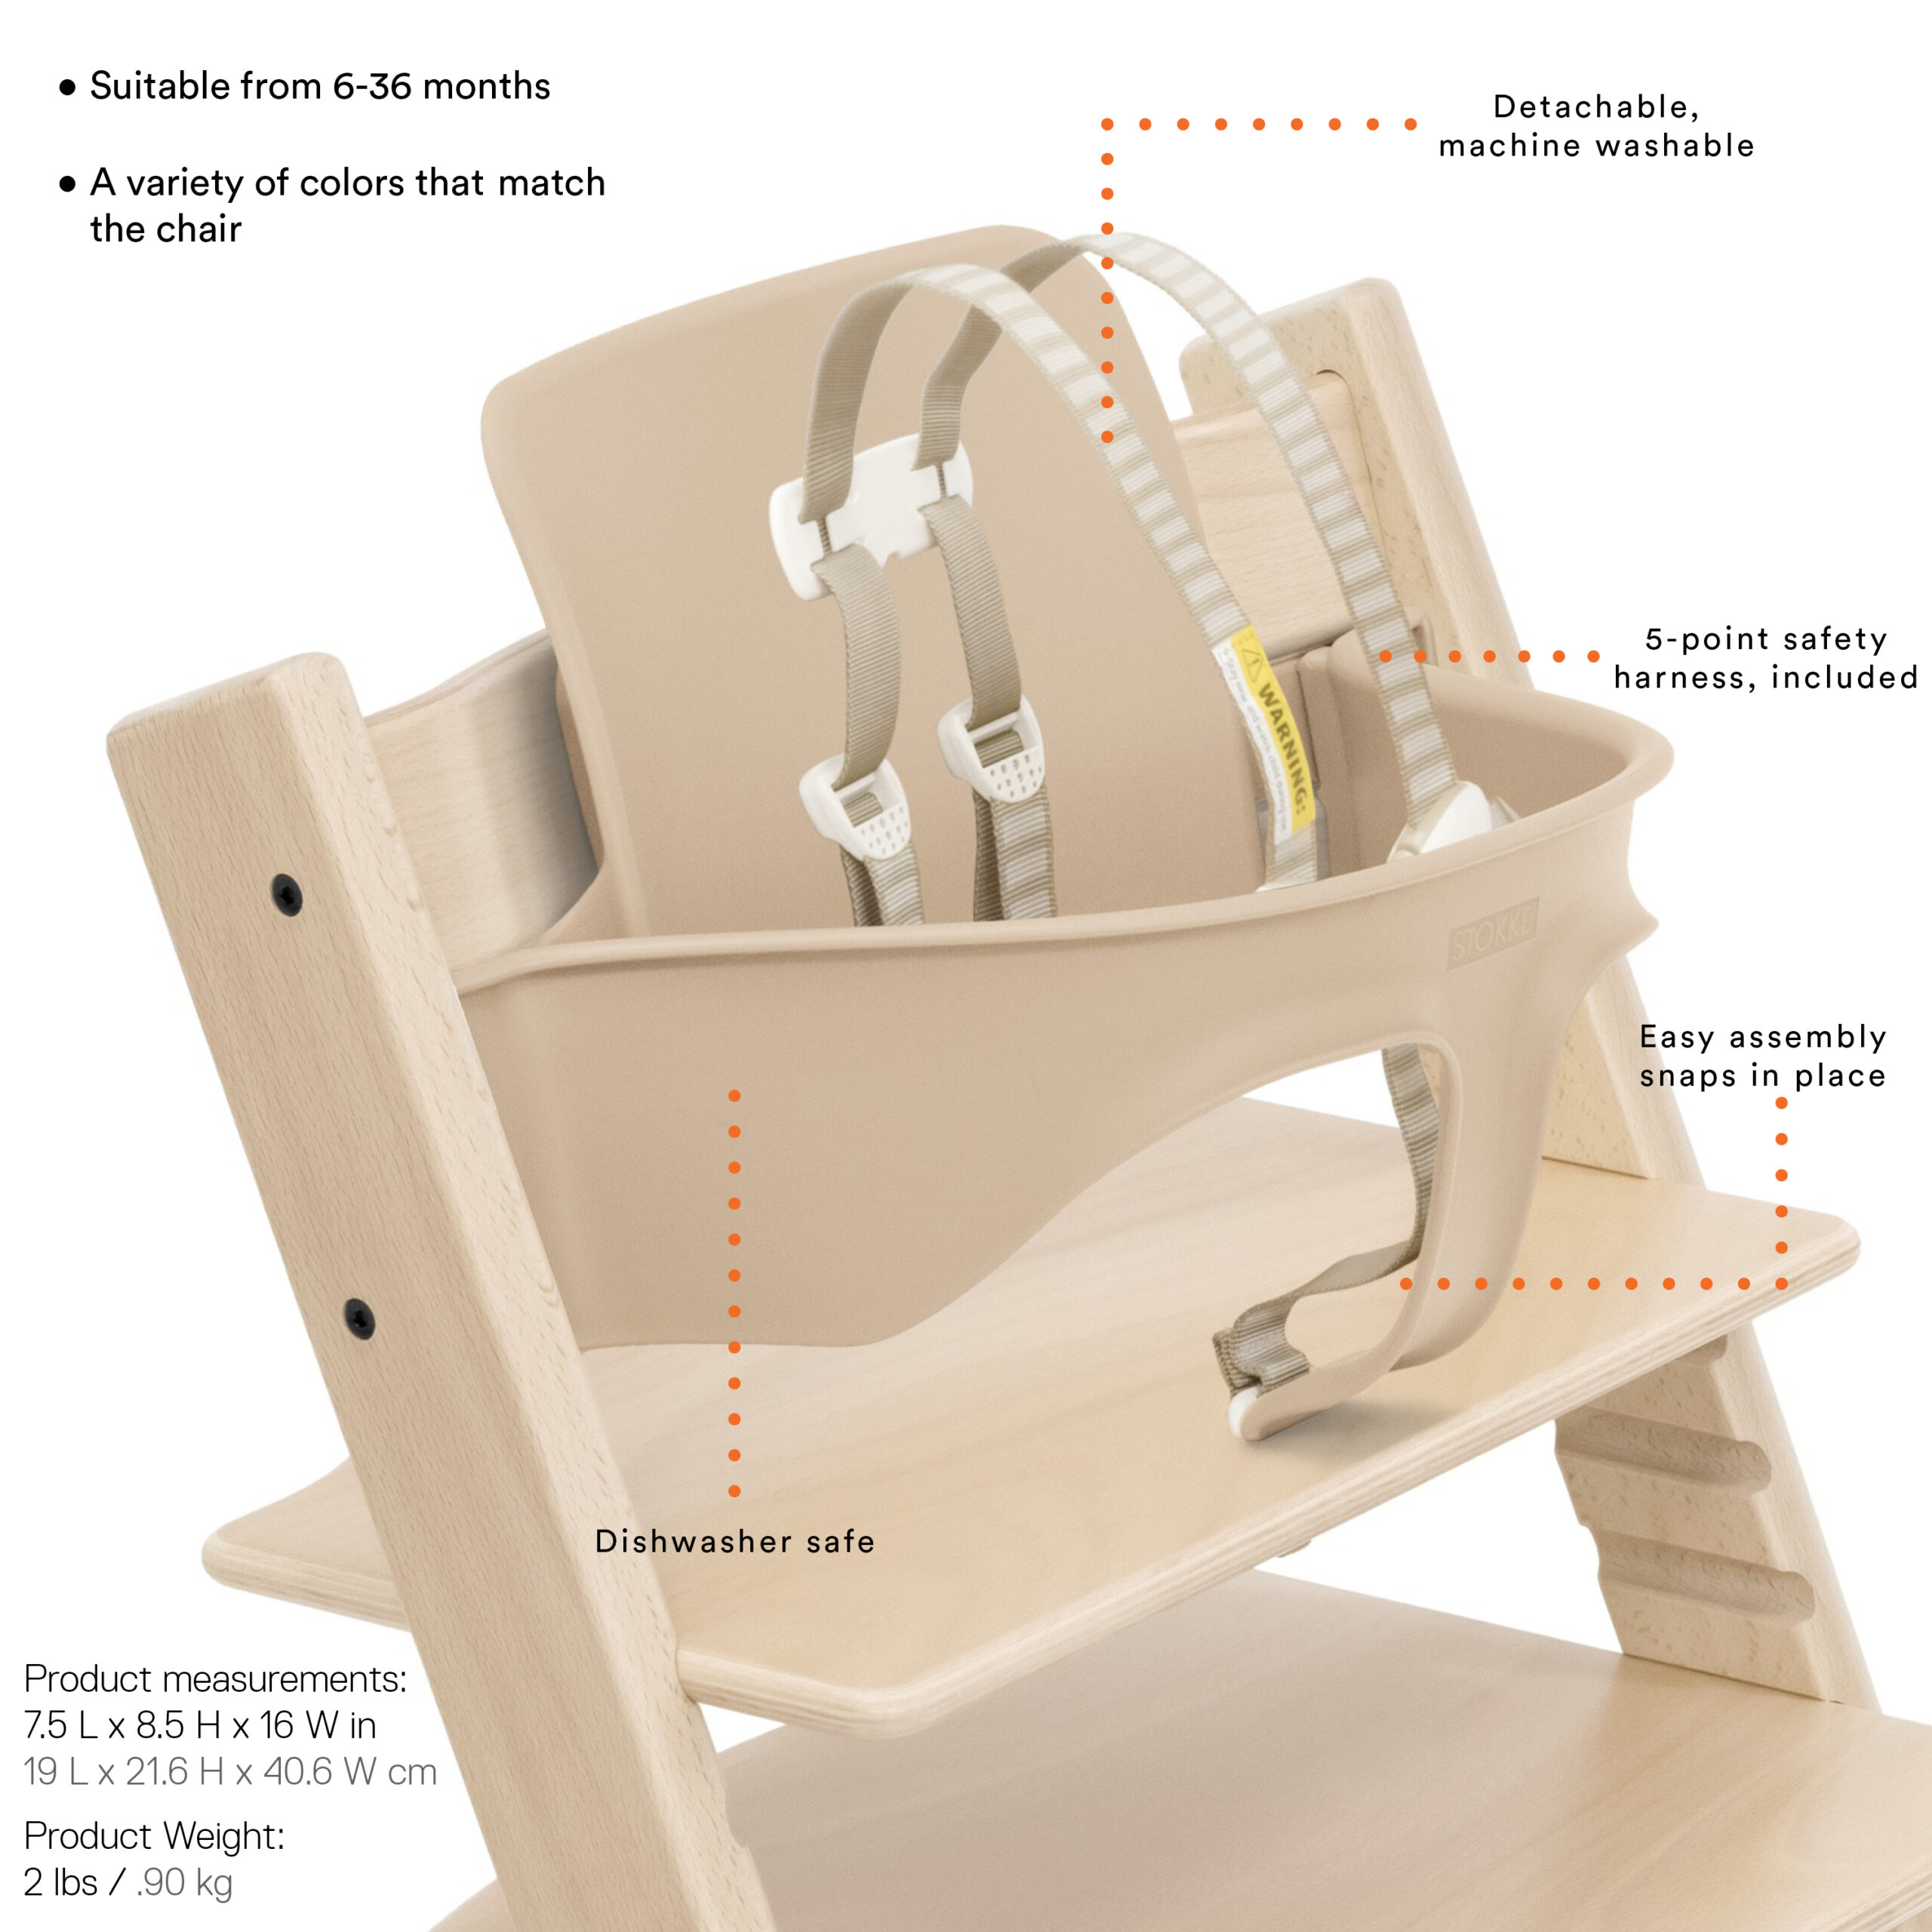 Stokke Tripp Trapp Babyset Features